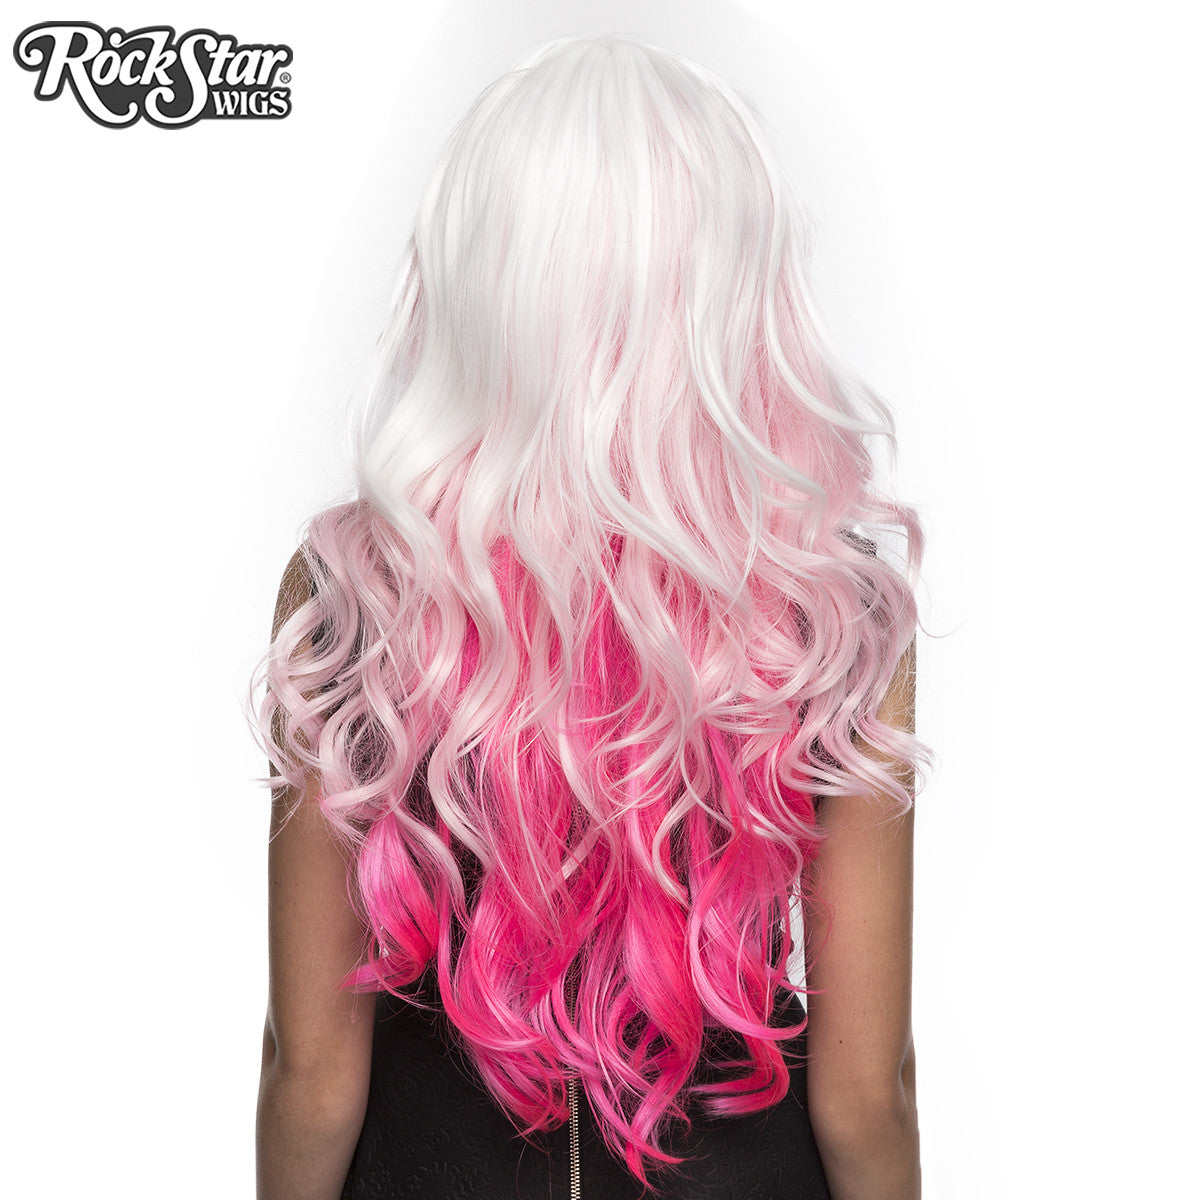 RockStar Wigs® <br> Triflect™ Collection - Pink Passion -00227